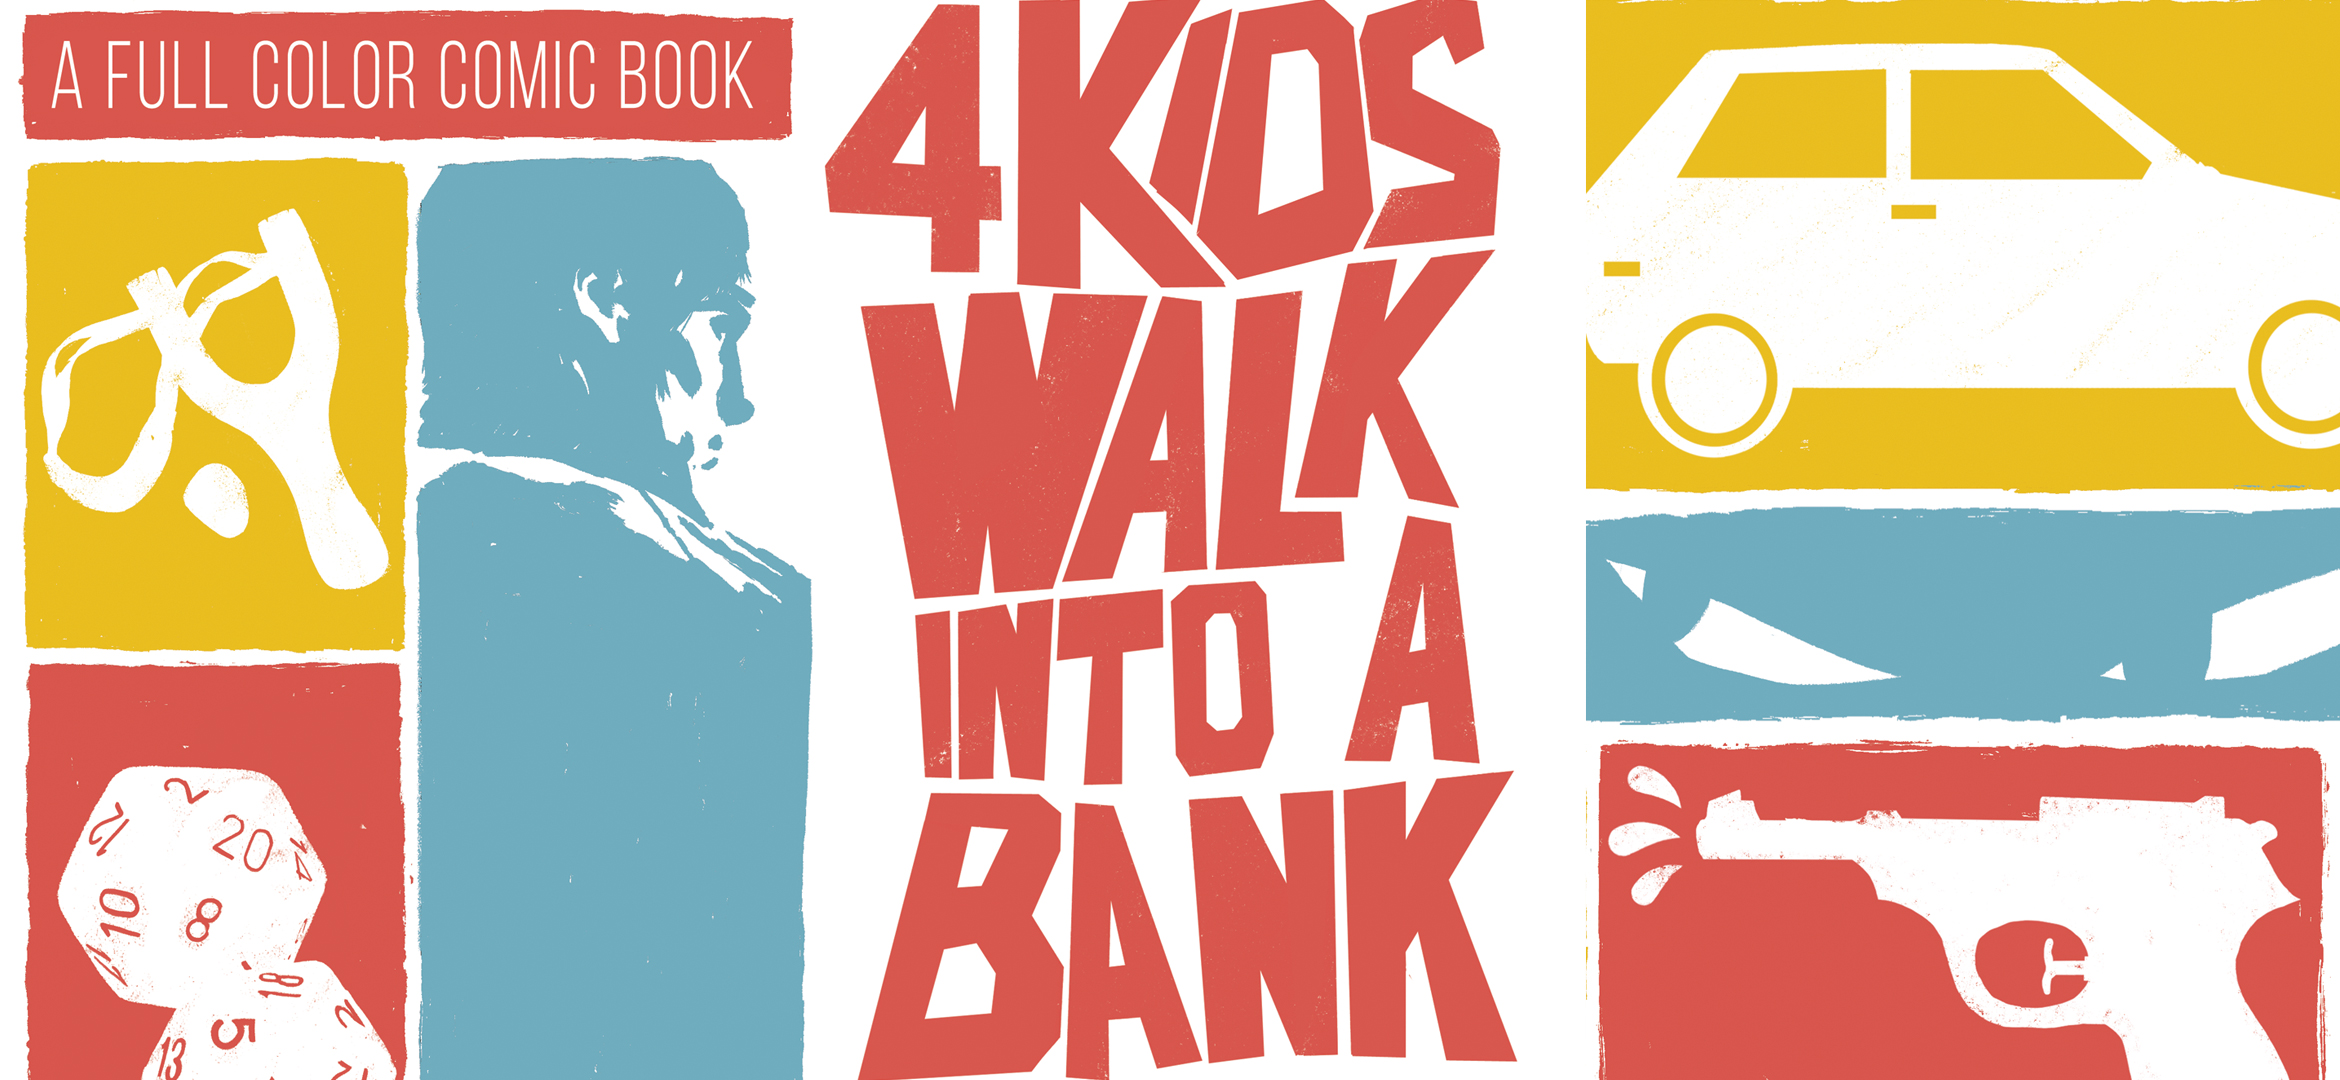 Episode 184 | Goodreads Book of the Month – 4 Kids Walk Into A Bank